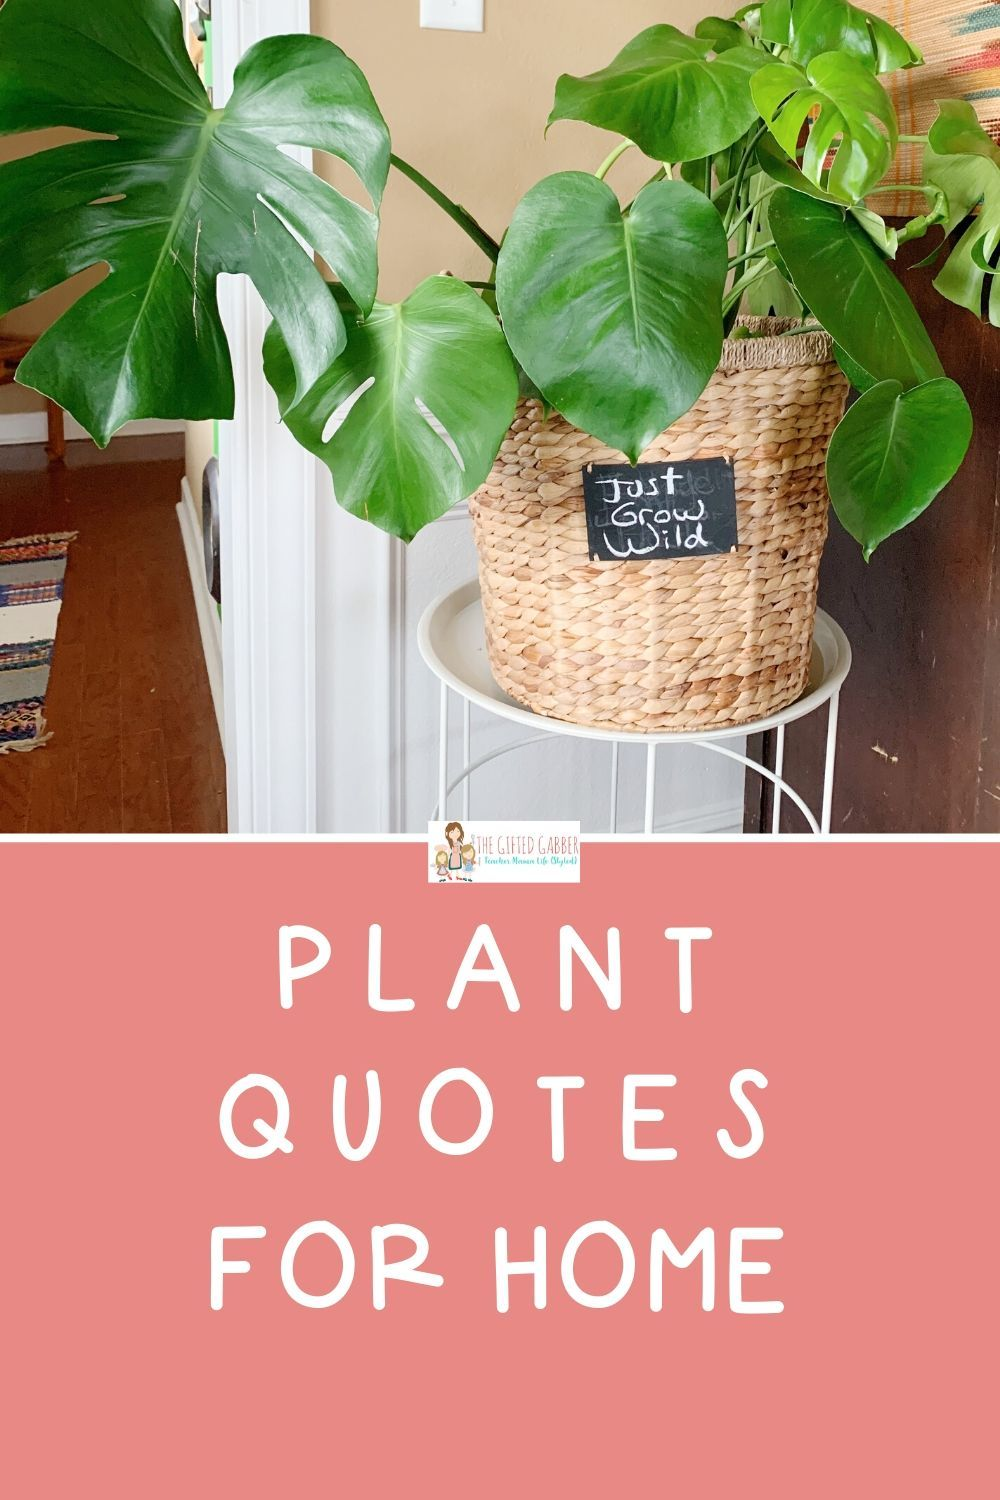 50 Funny Plant Quotes Funny Garden Quotes The Gifted Gabber Plants Quotes Garden Quotes Potted Houseplants